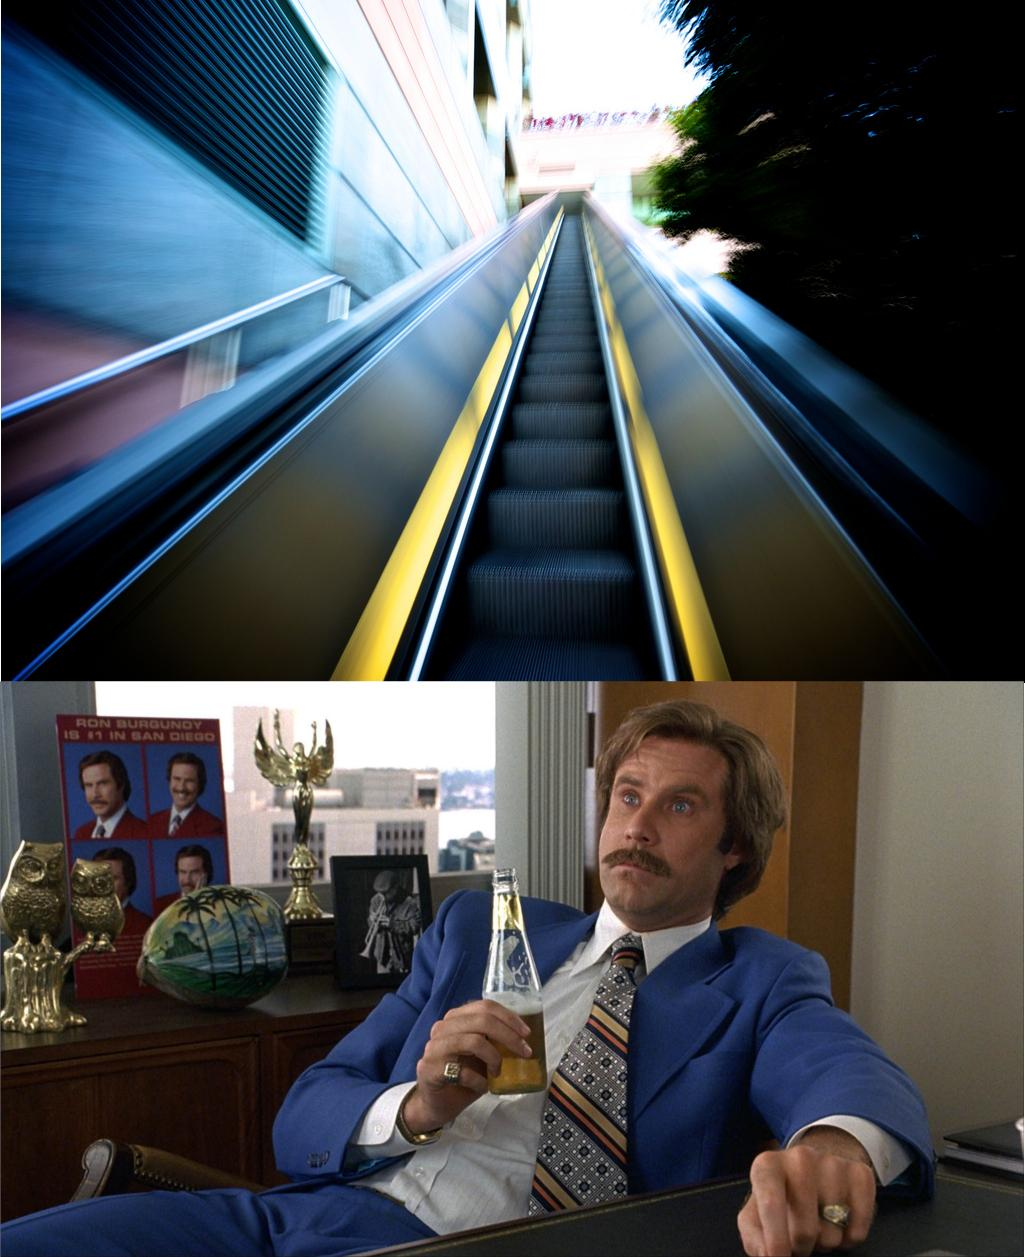 Funny well that escalated quickly will Ferrell meme pictures photos wow longest escalator will speechless